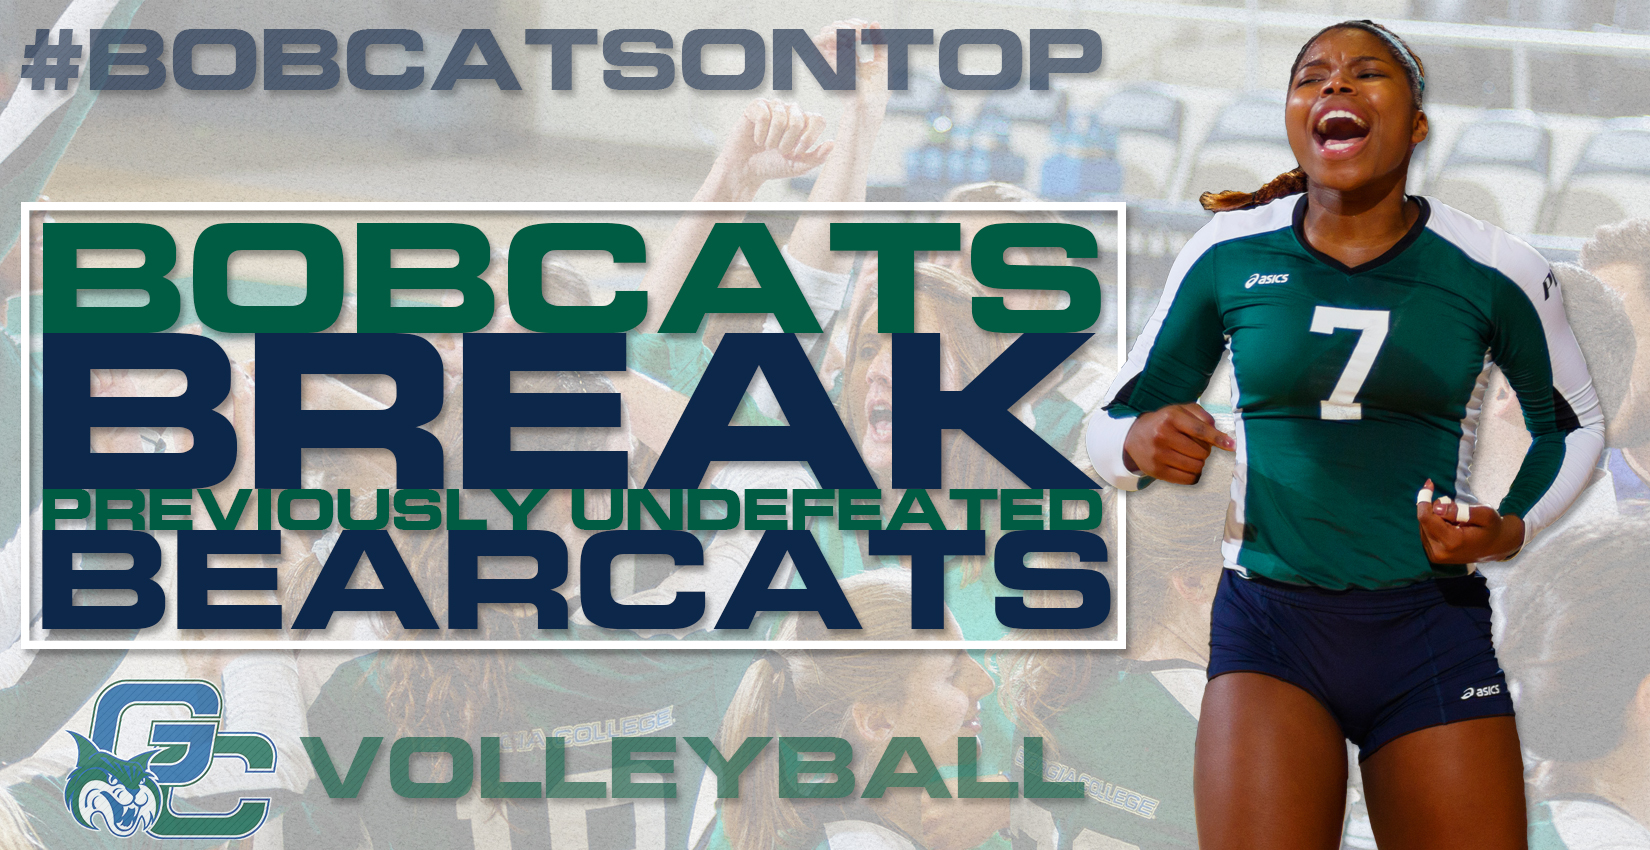 Bobcats Break Bearcats, Shatter Undefeated Record